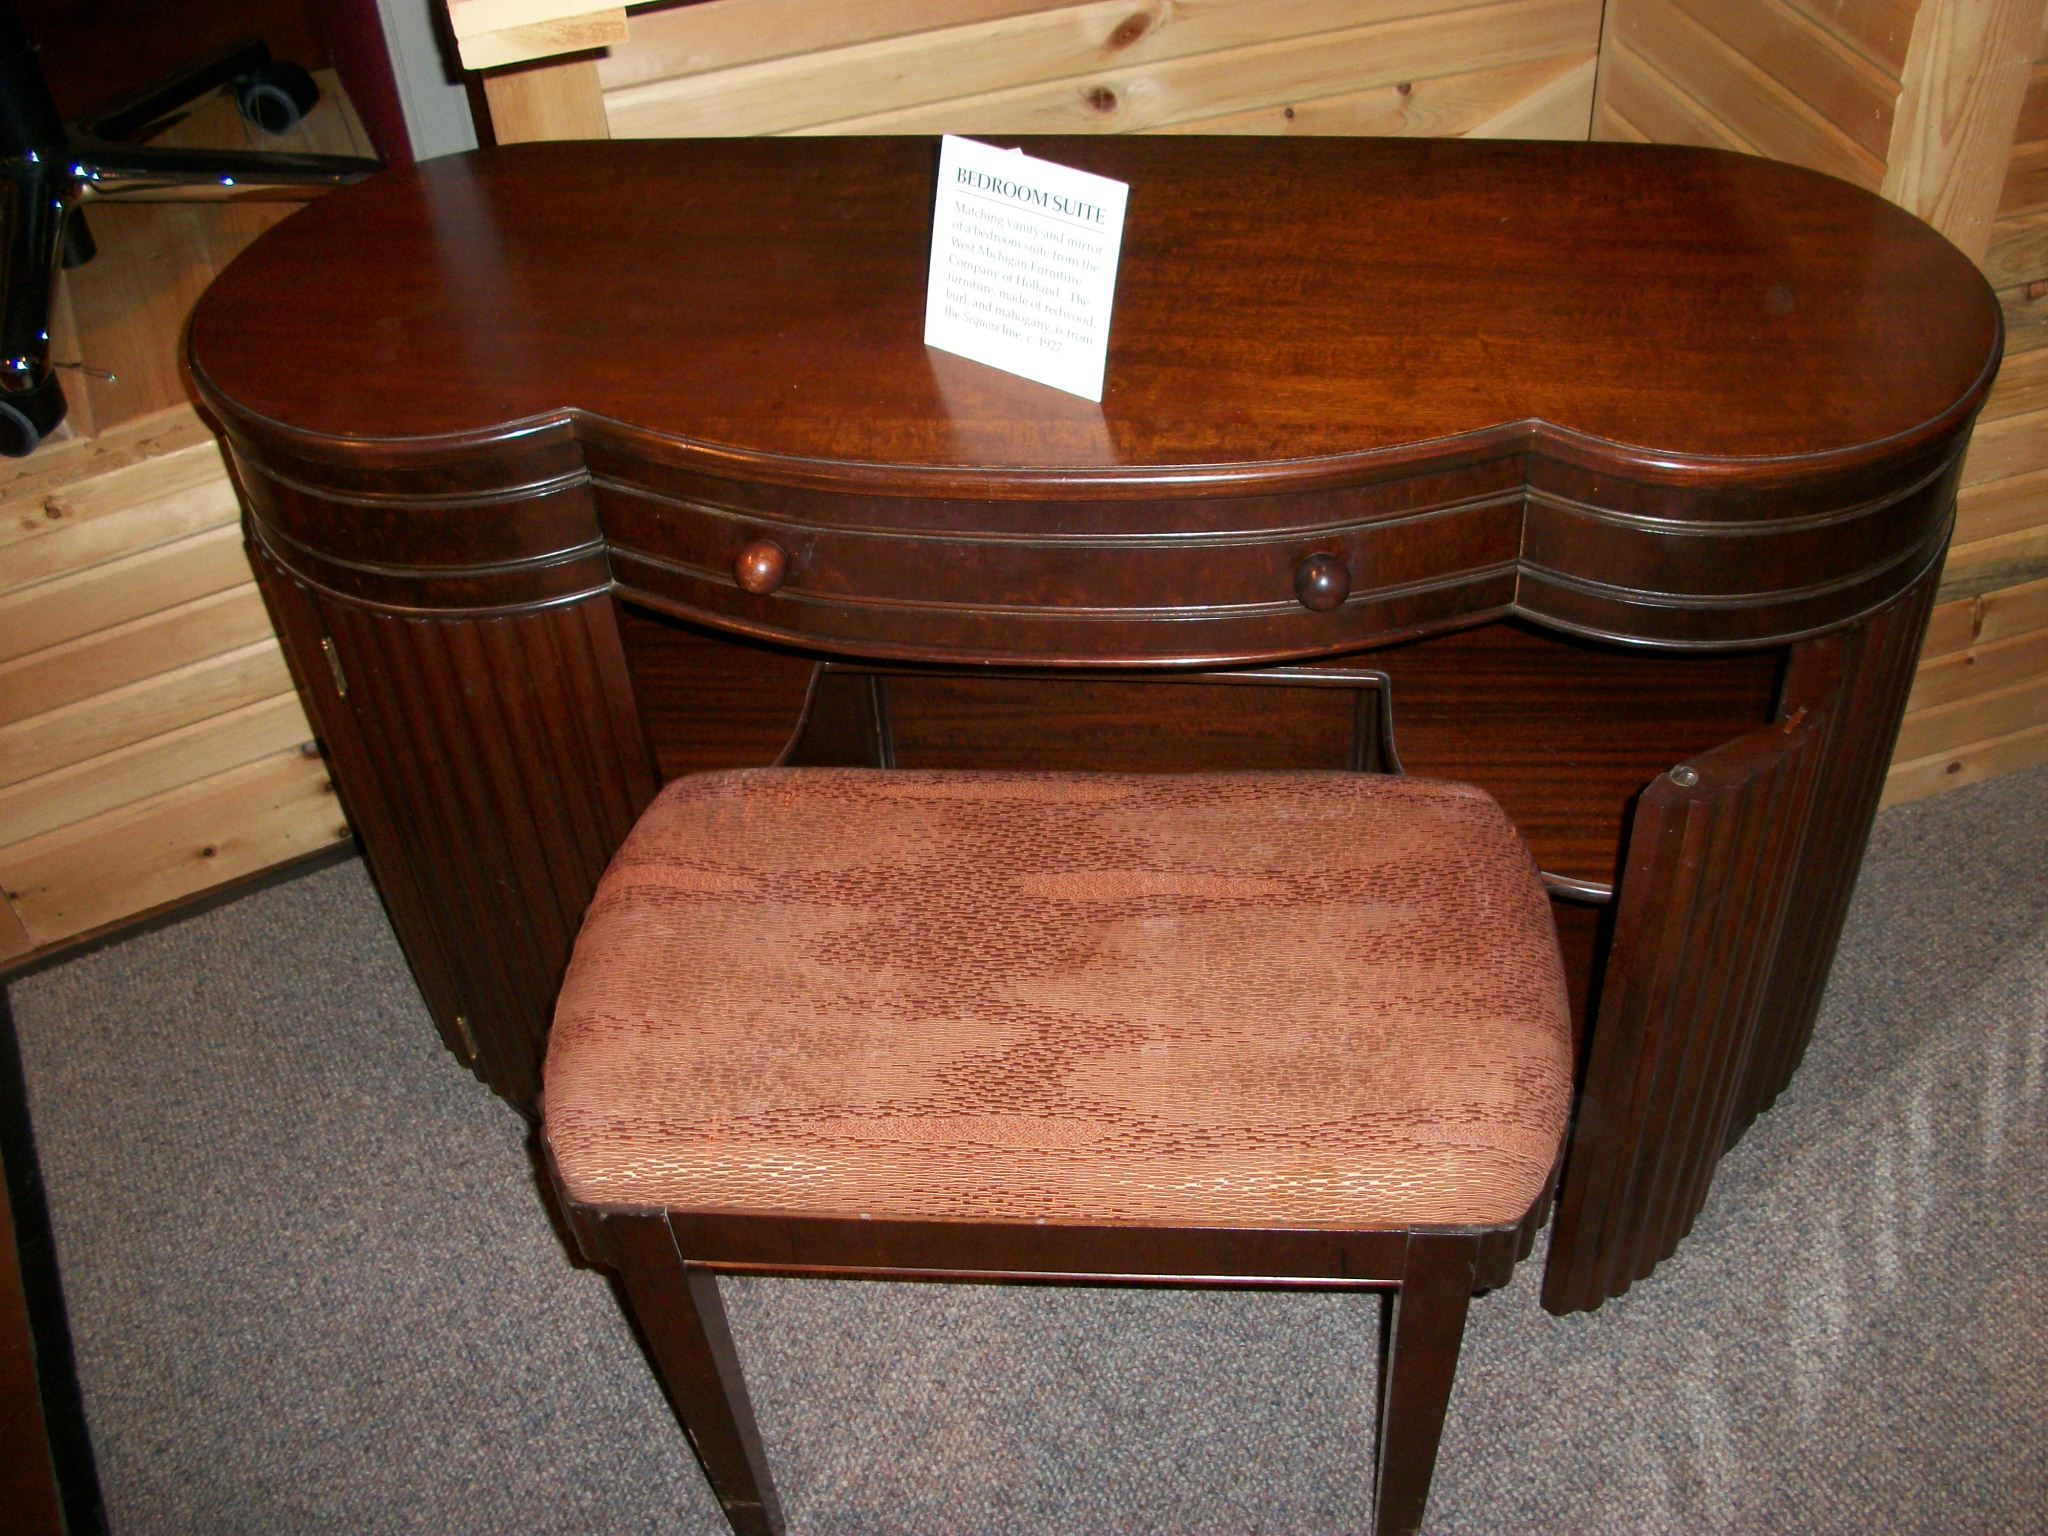 1992 40 2 3 Dressing Table And Bench West Michigan Furniture Company Ca 1927